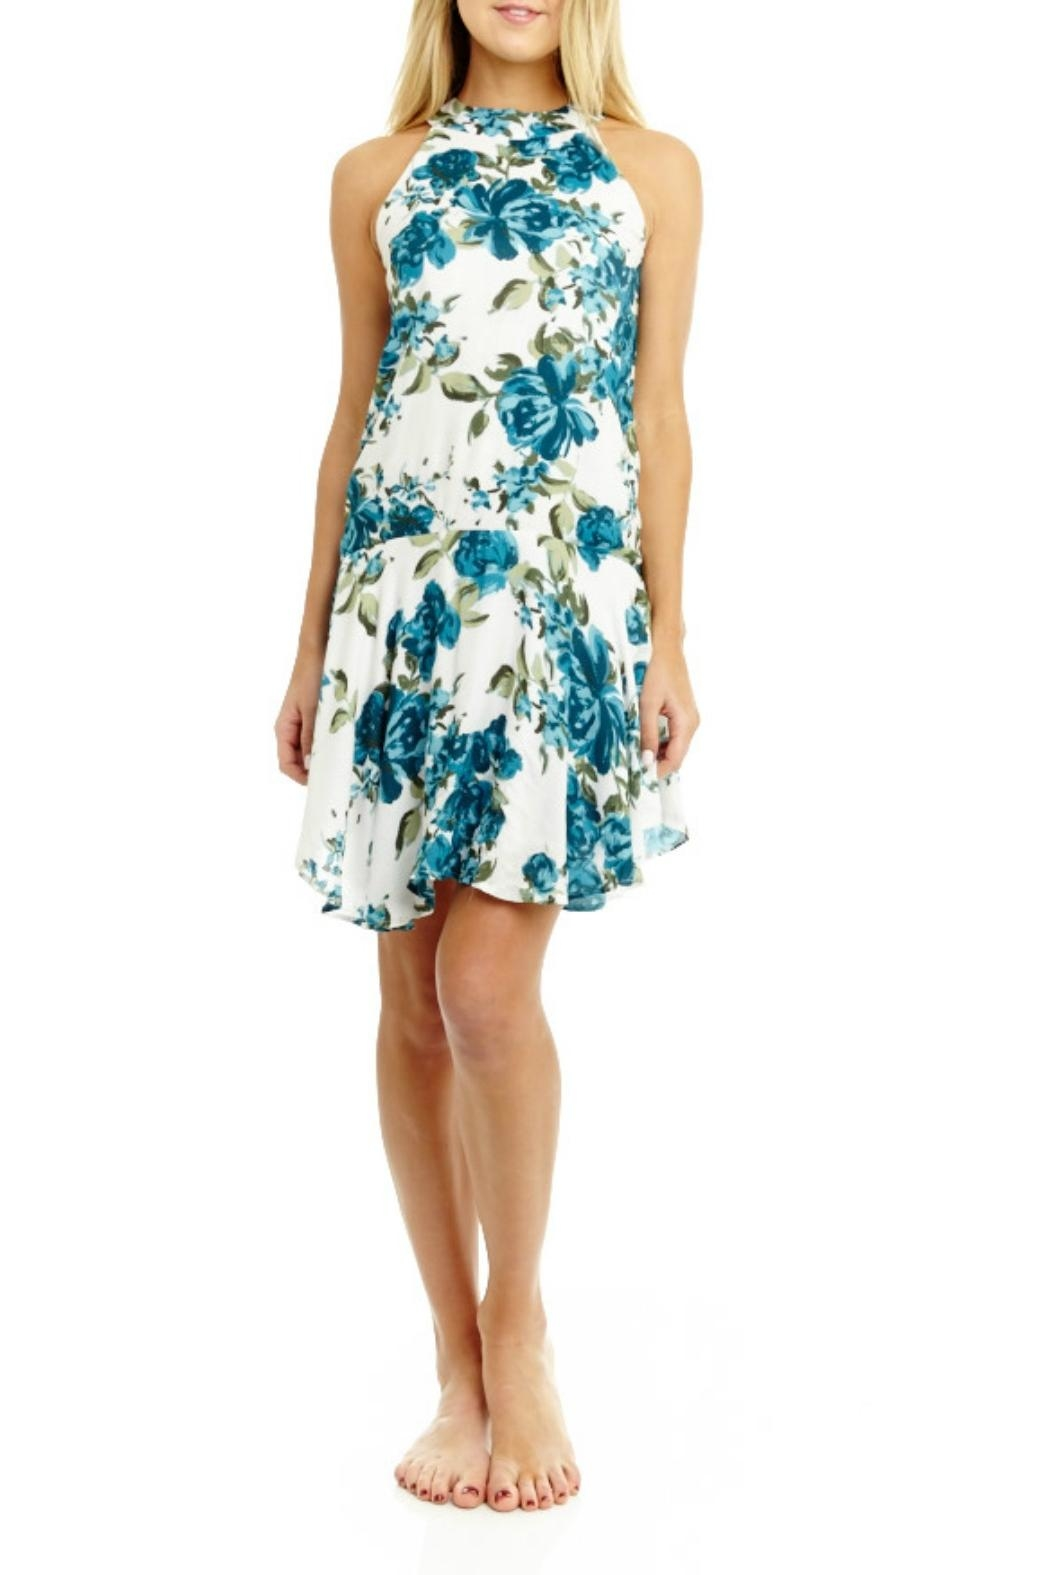 Mabel & Mary Viridity Floral Dress - Main Image